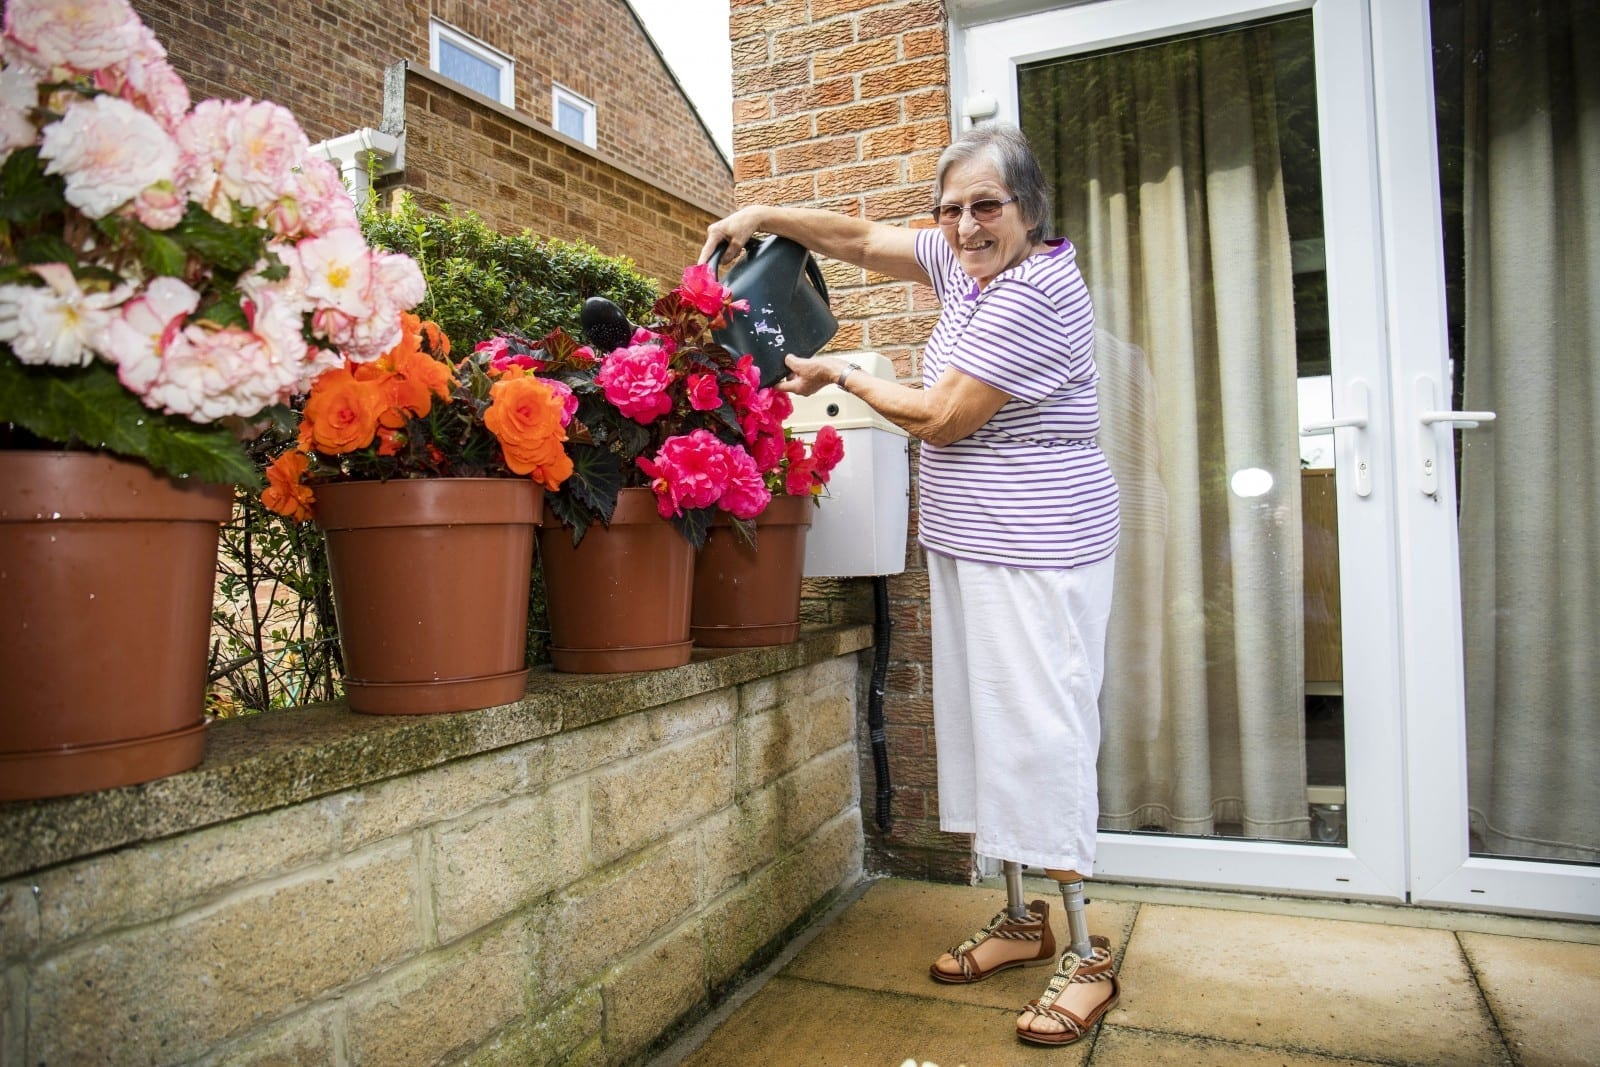 Great-Grandmother Has Both Legs Amputated And Spends Eight Months In Hospital After Getting Bitten By Insect – While Gardening